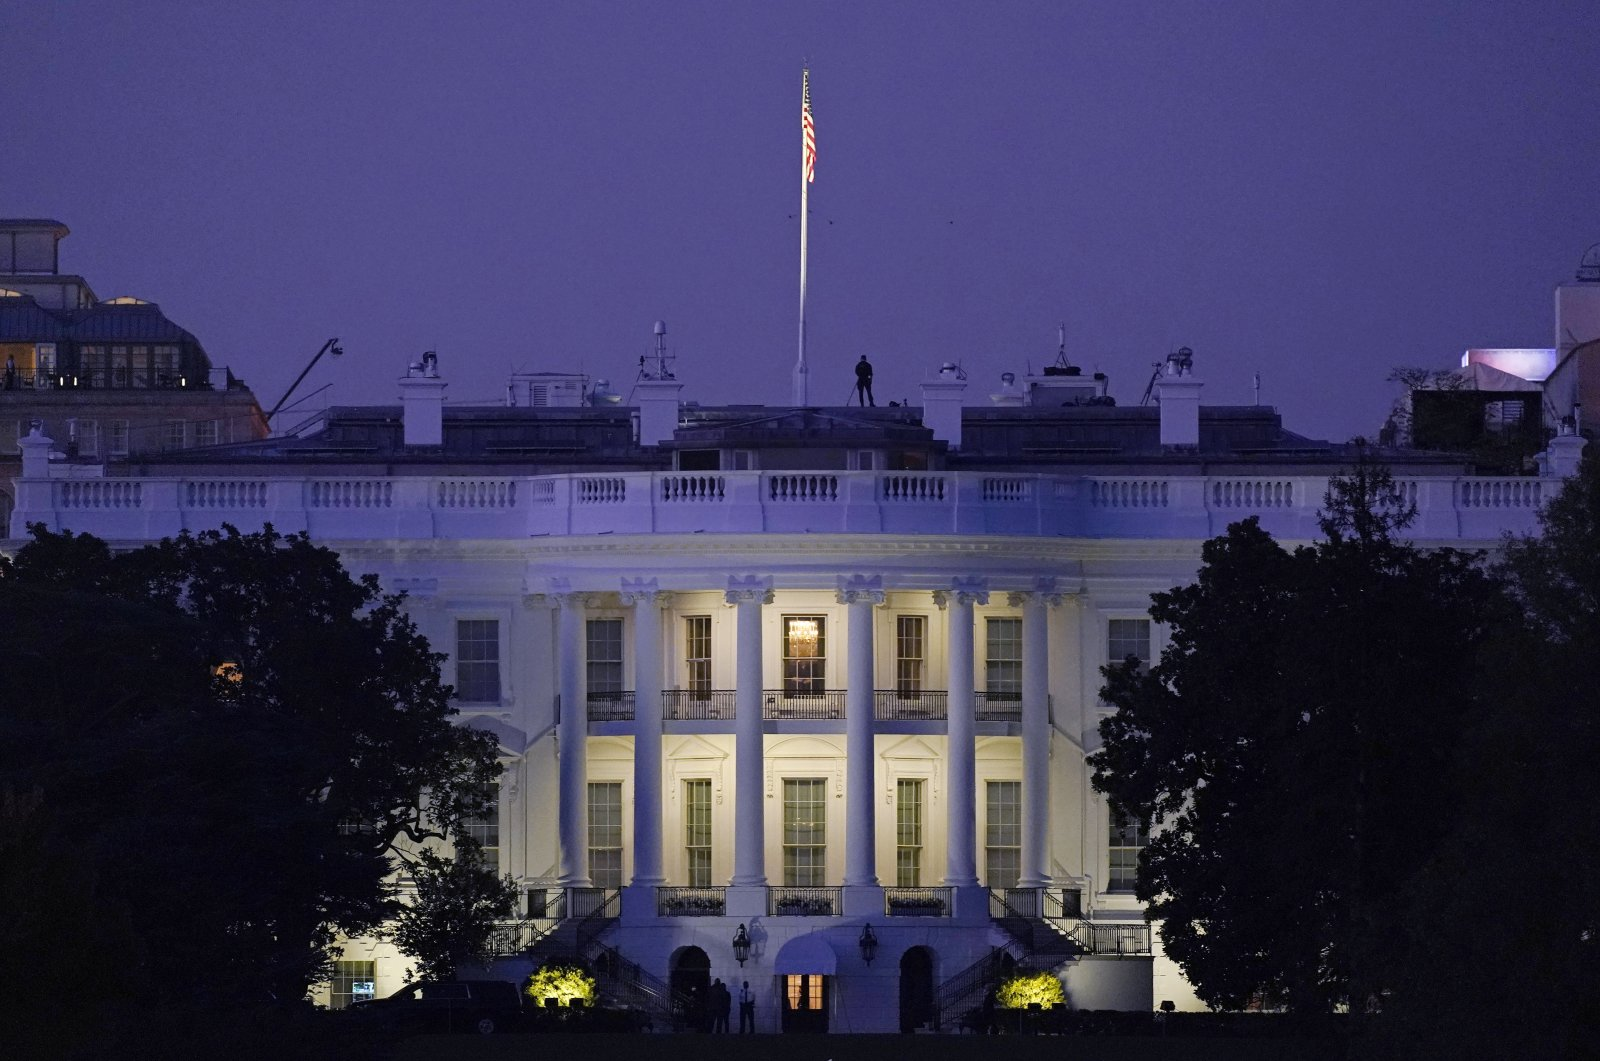 Lights shine from inside the White House as the sun sets, in Washington, D.C., Nov. 7, 2020. (AP Photo)